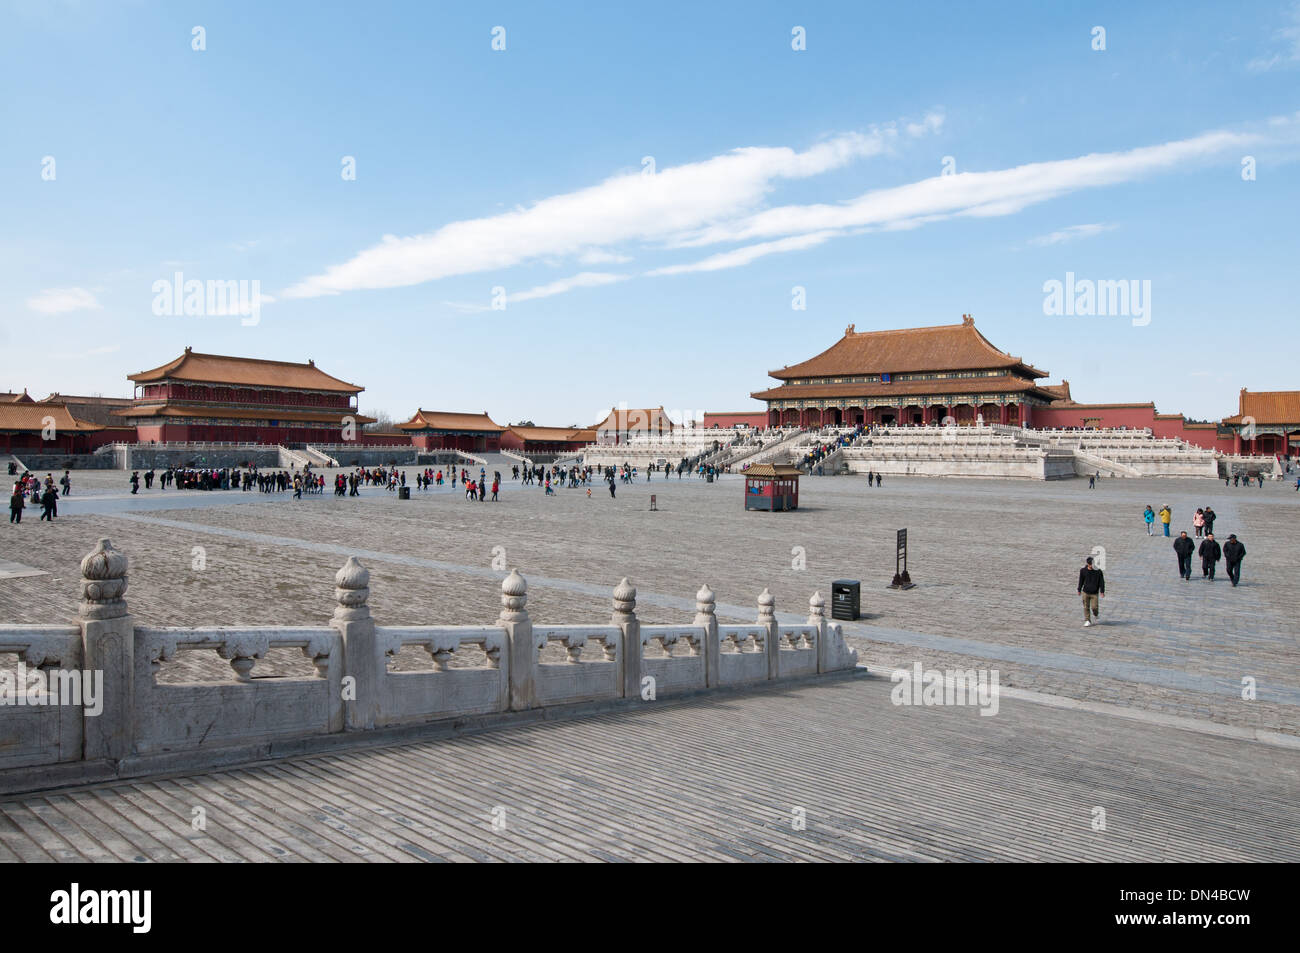 Hall of Supreme Harmony (Taihedian) and Hongyi Pavilion of Spreading Righteousness (Left) in Forbidden City, Beijing, China - Stock Image